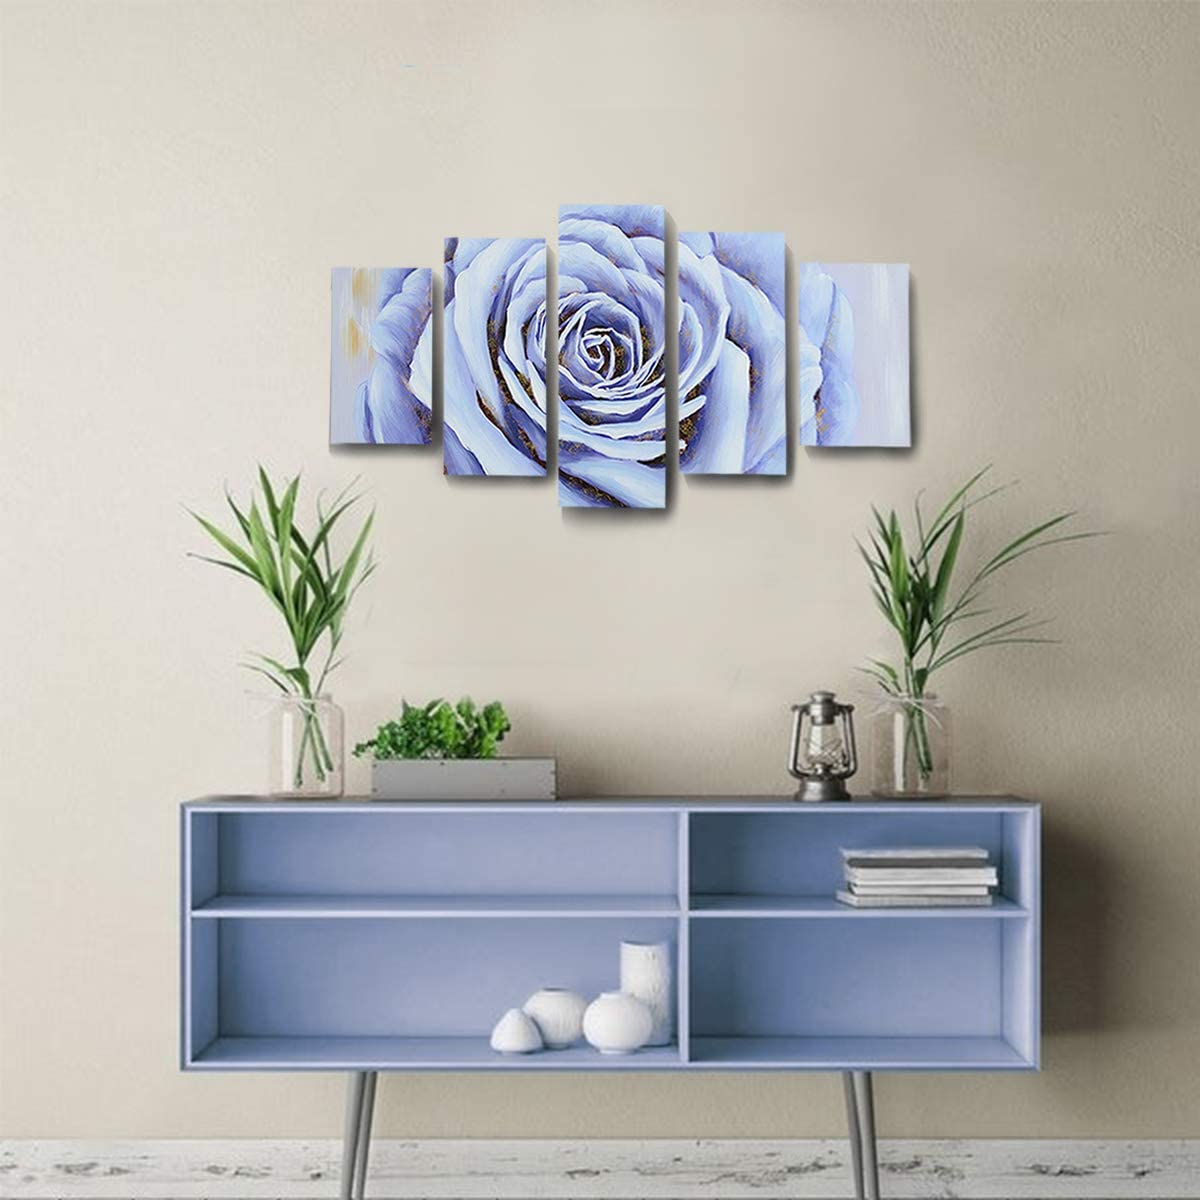 SDYA Large Canvas Wall Art Hand-Painted Painting Wall Art Decor Framed and Stretched 5 Panels Blue Rose Flower Canvas Artwork for Bathroom Living Room Office Hotel and Dining Room